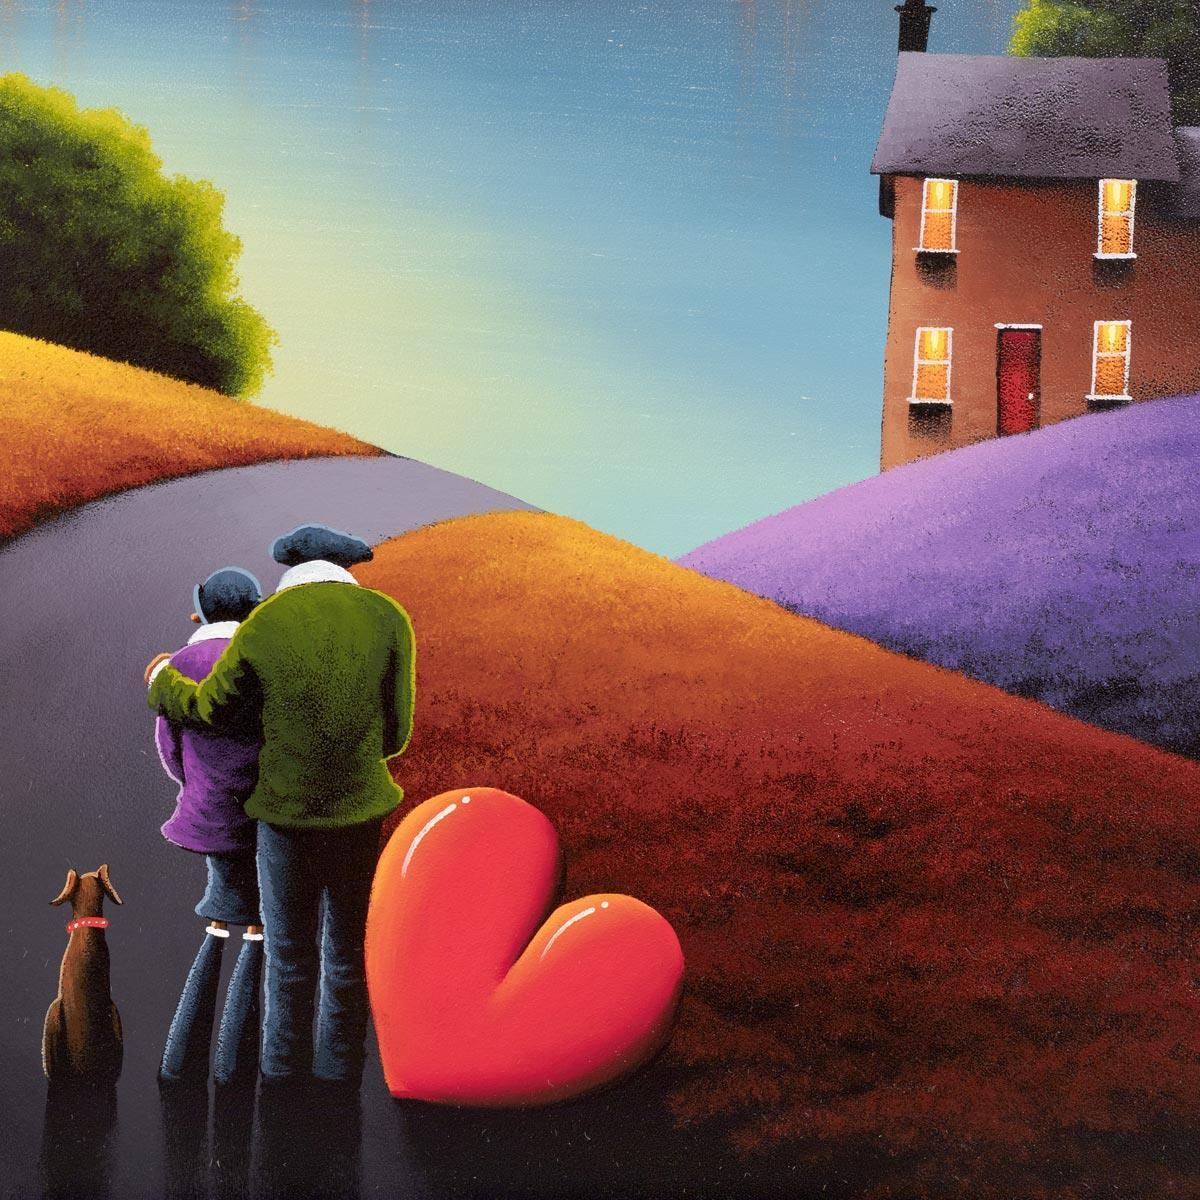 Feels Like Home - Original David Renshaw Framed